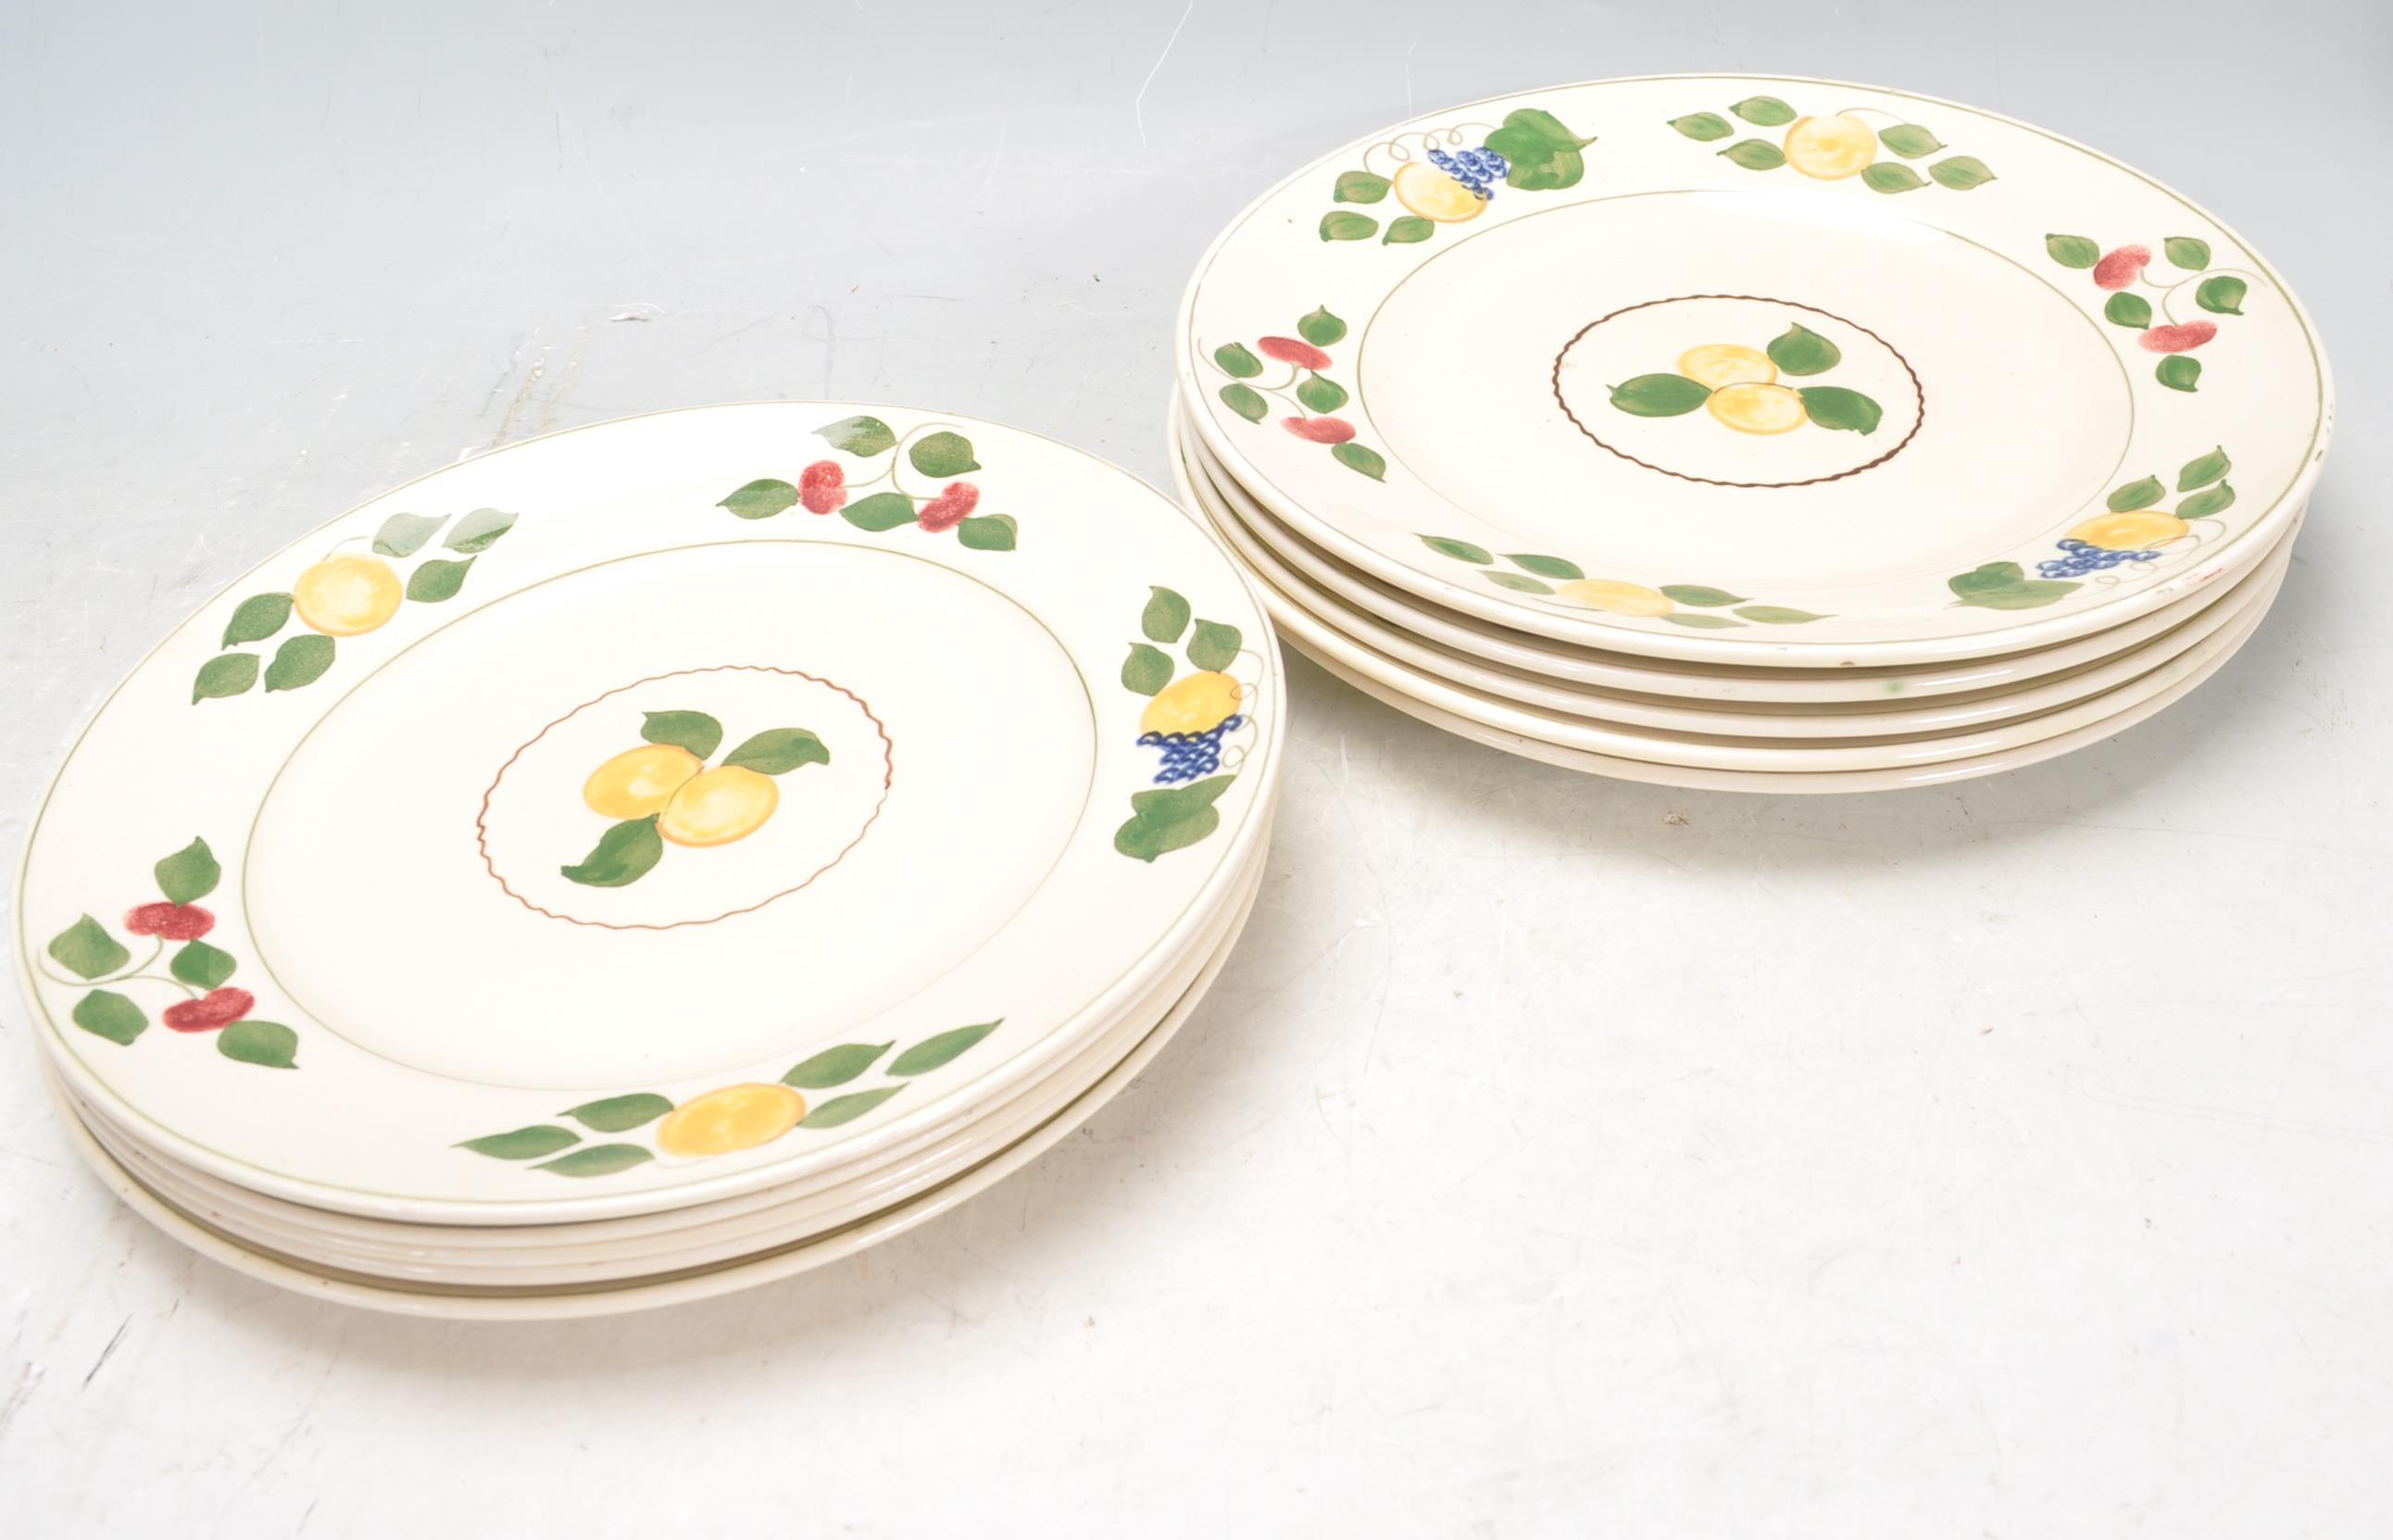 VINTAGE SHELLY TEA SET AND ADAMS PLATES - Image 12 of 14